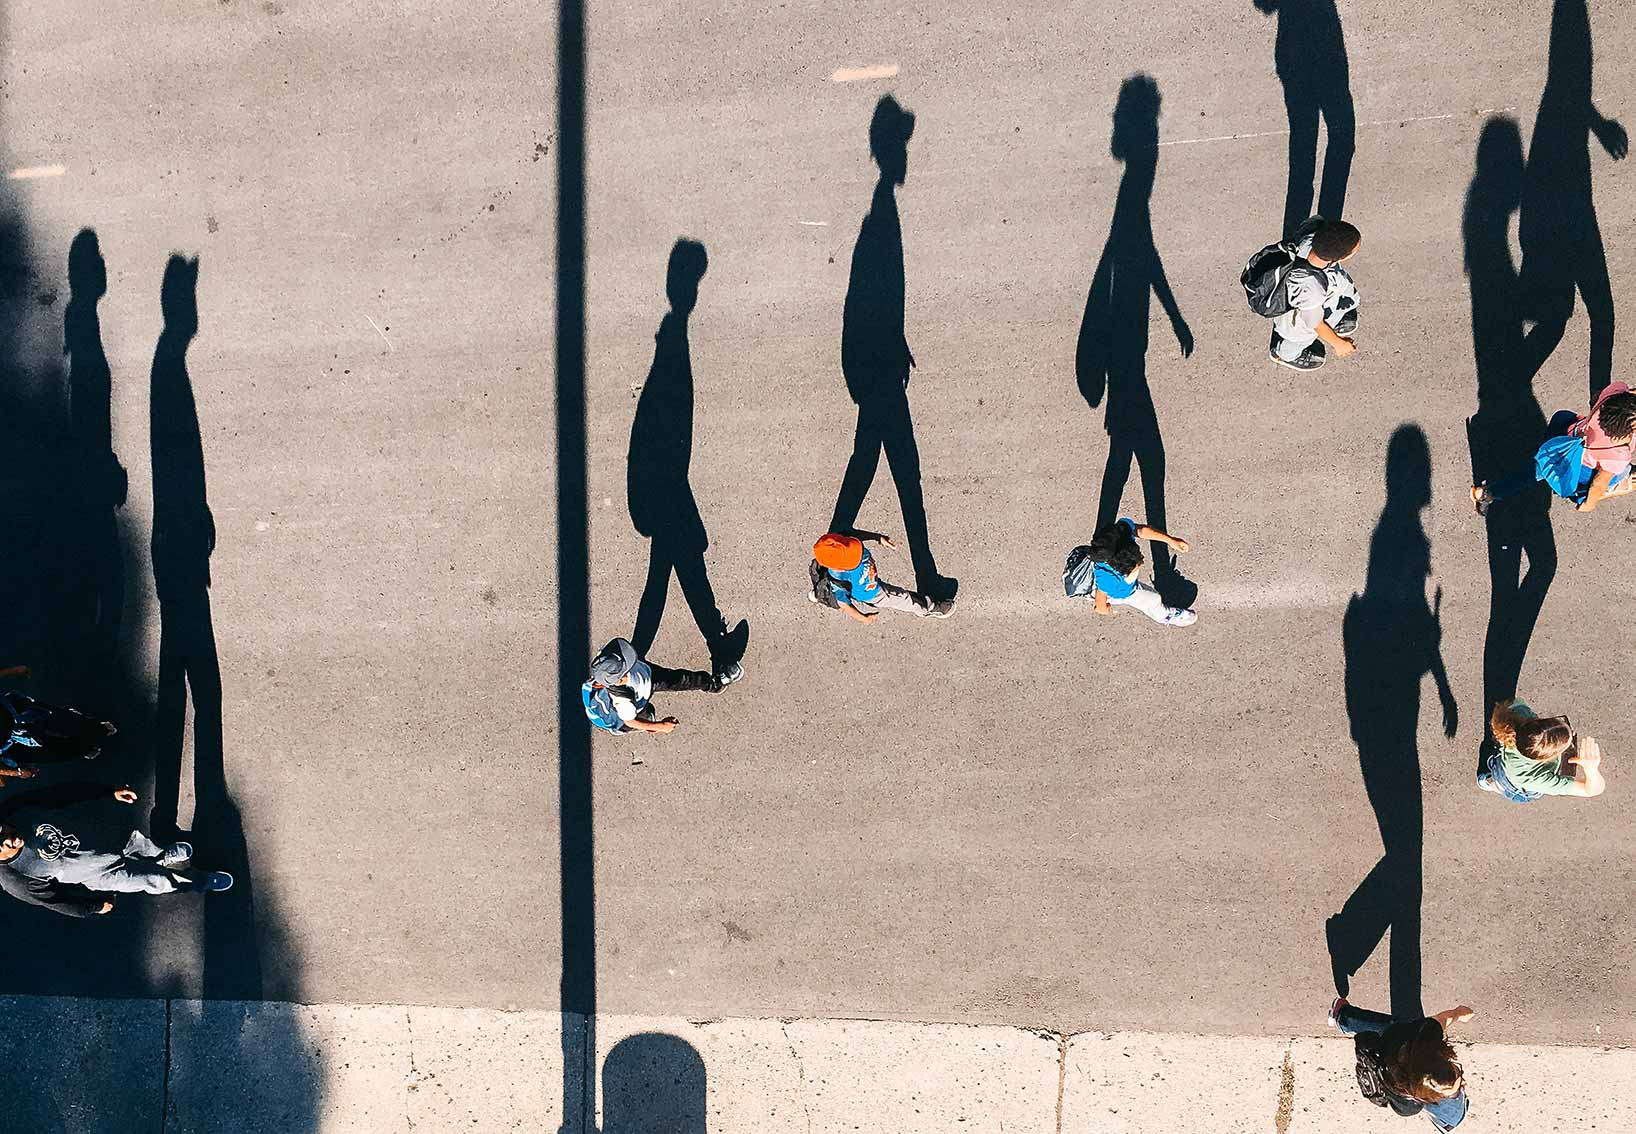 a bunch of pedestrians are pictured from above crossing a street